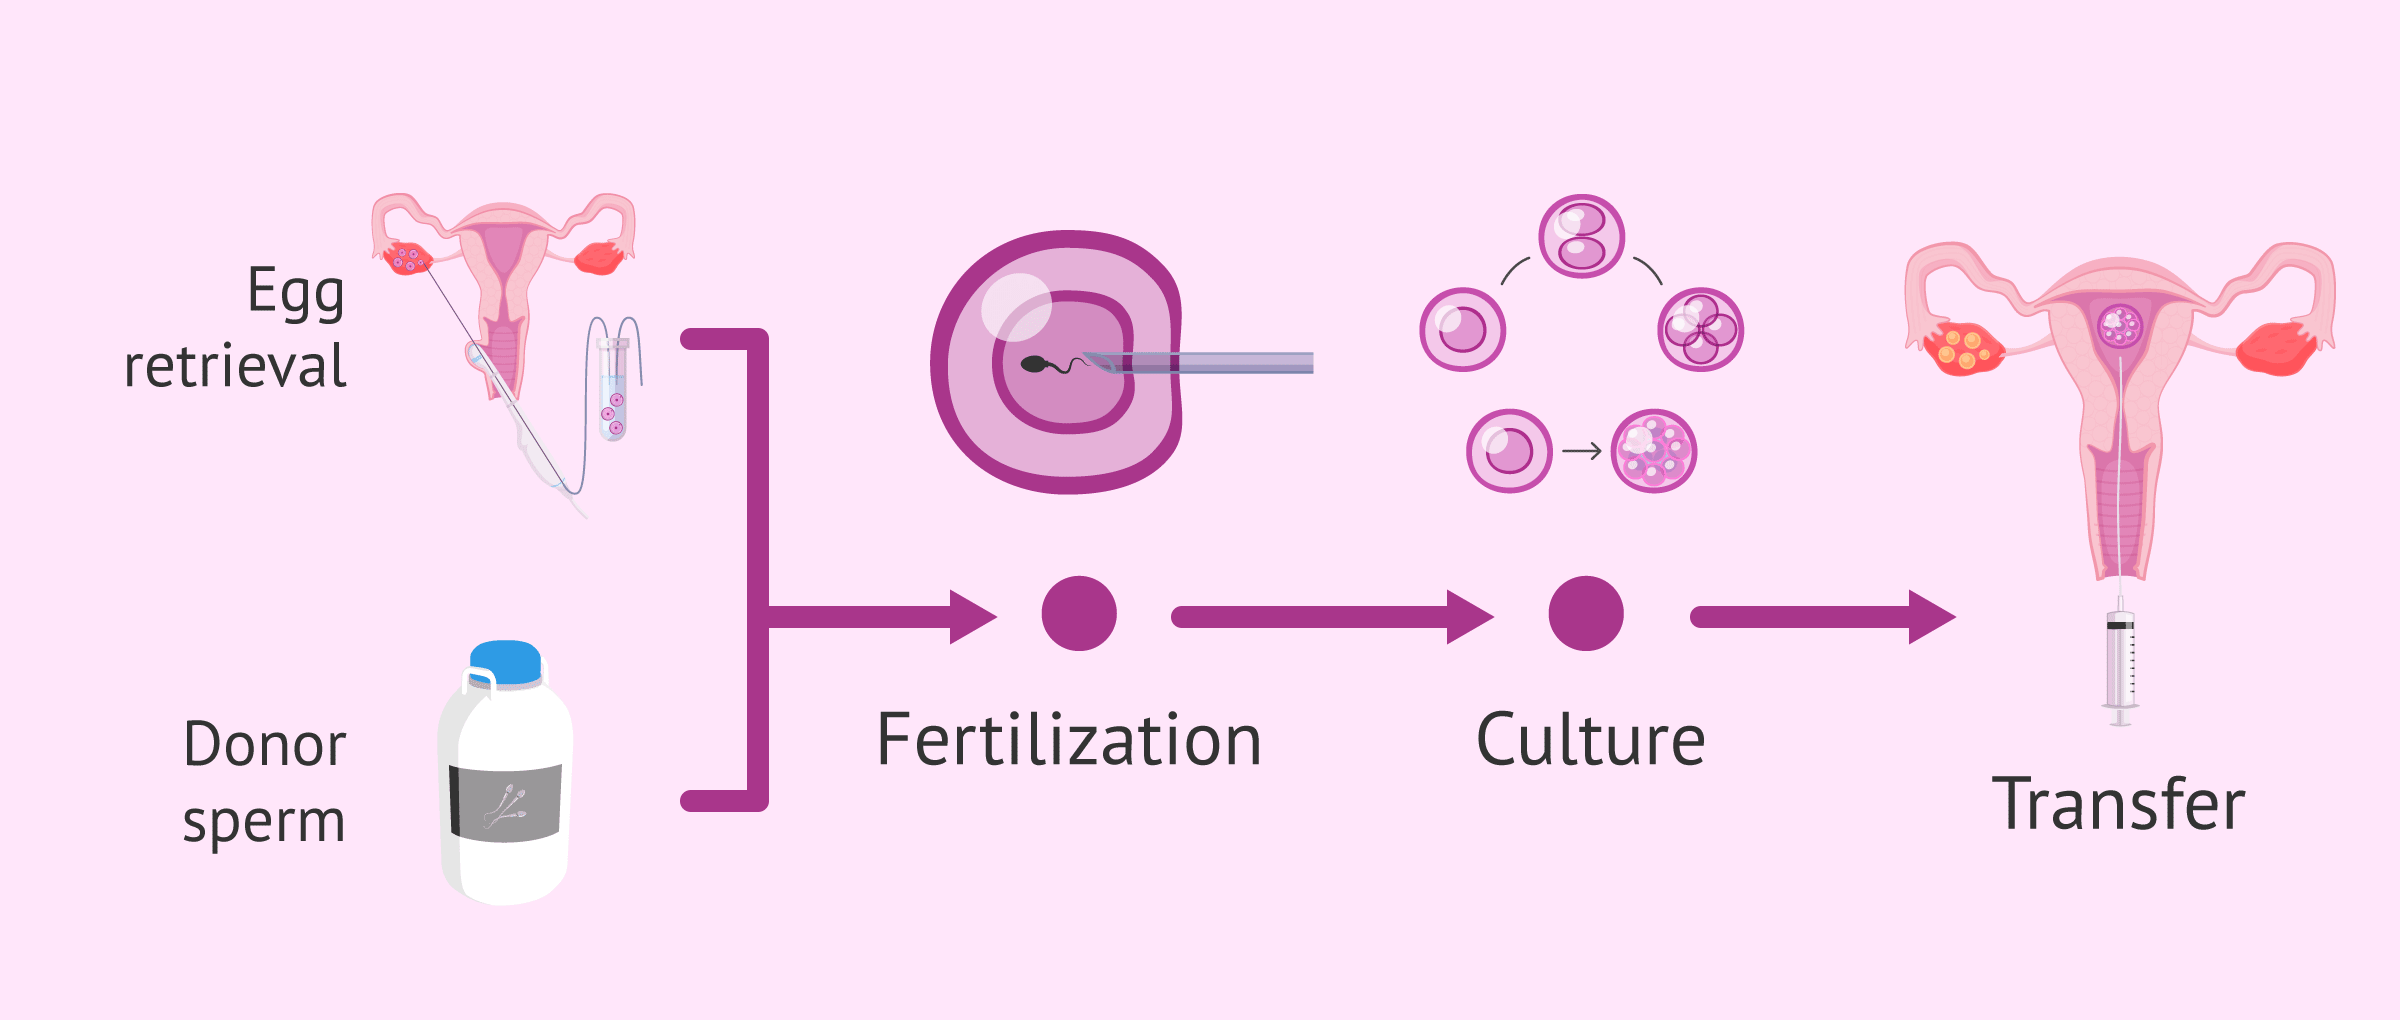 IVF process with donor sperm